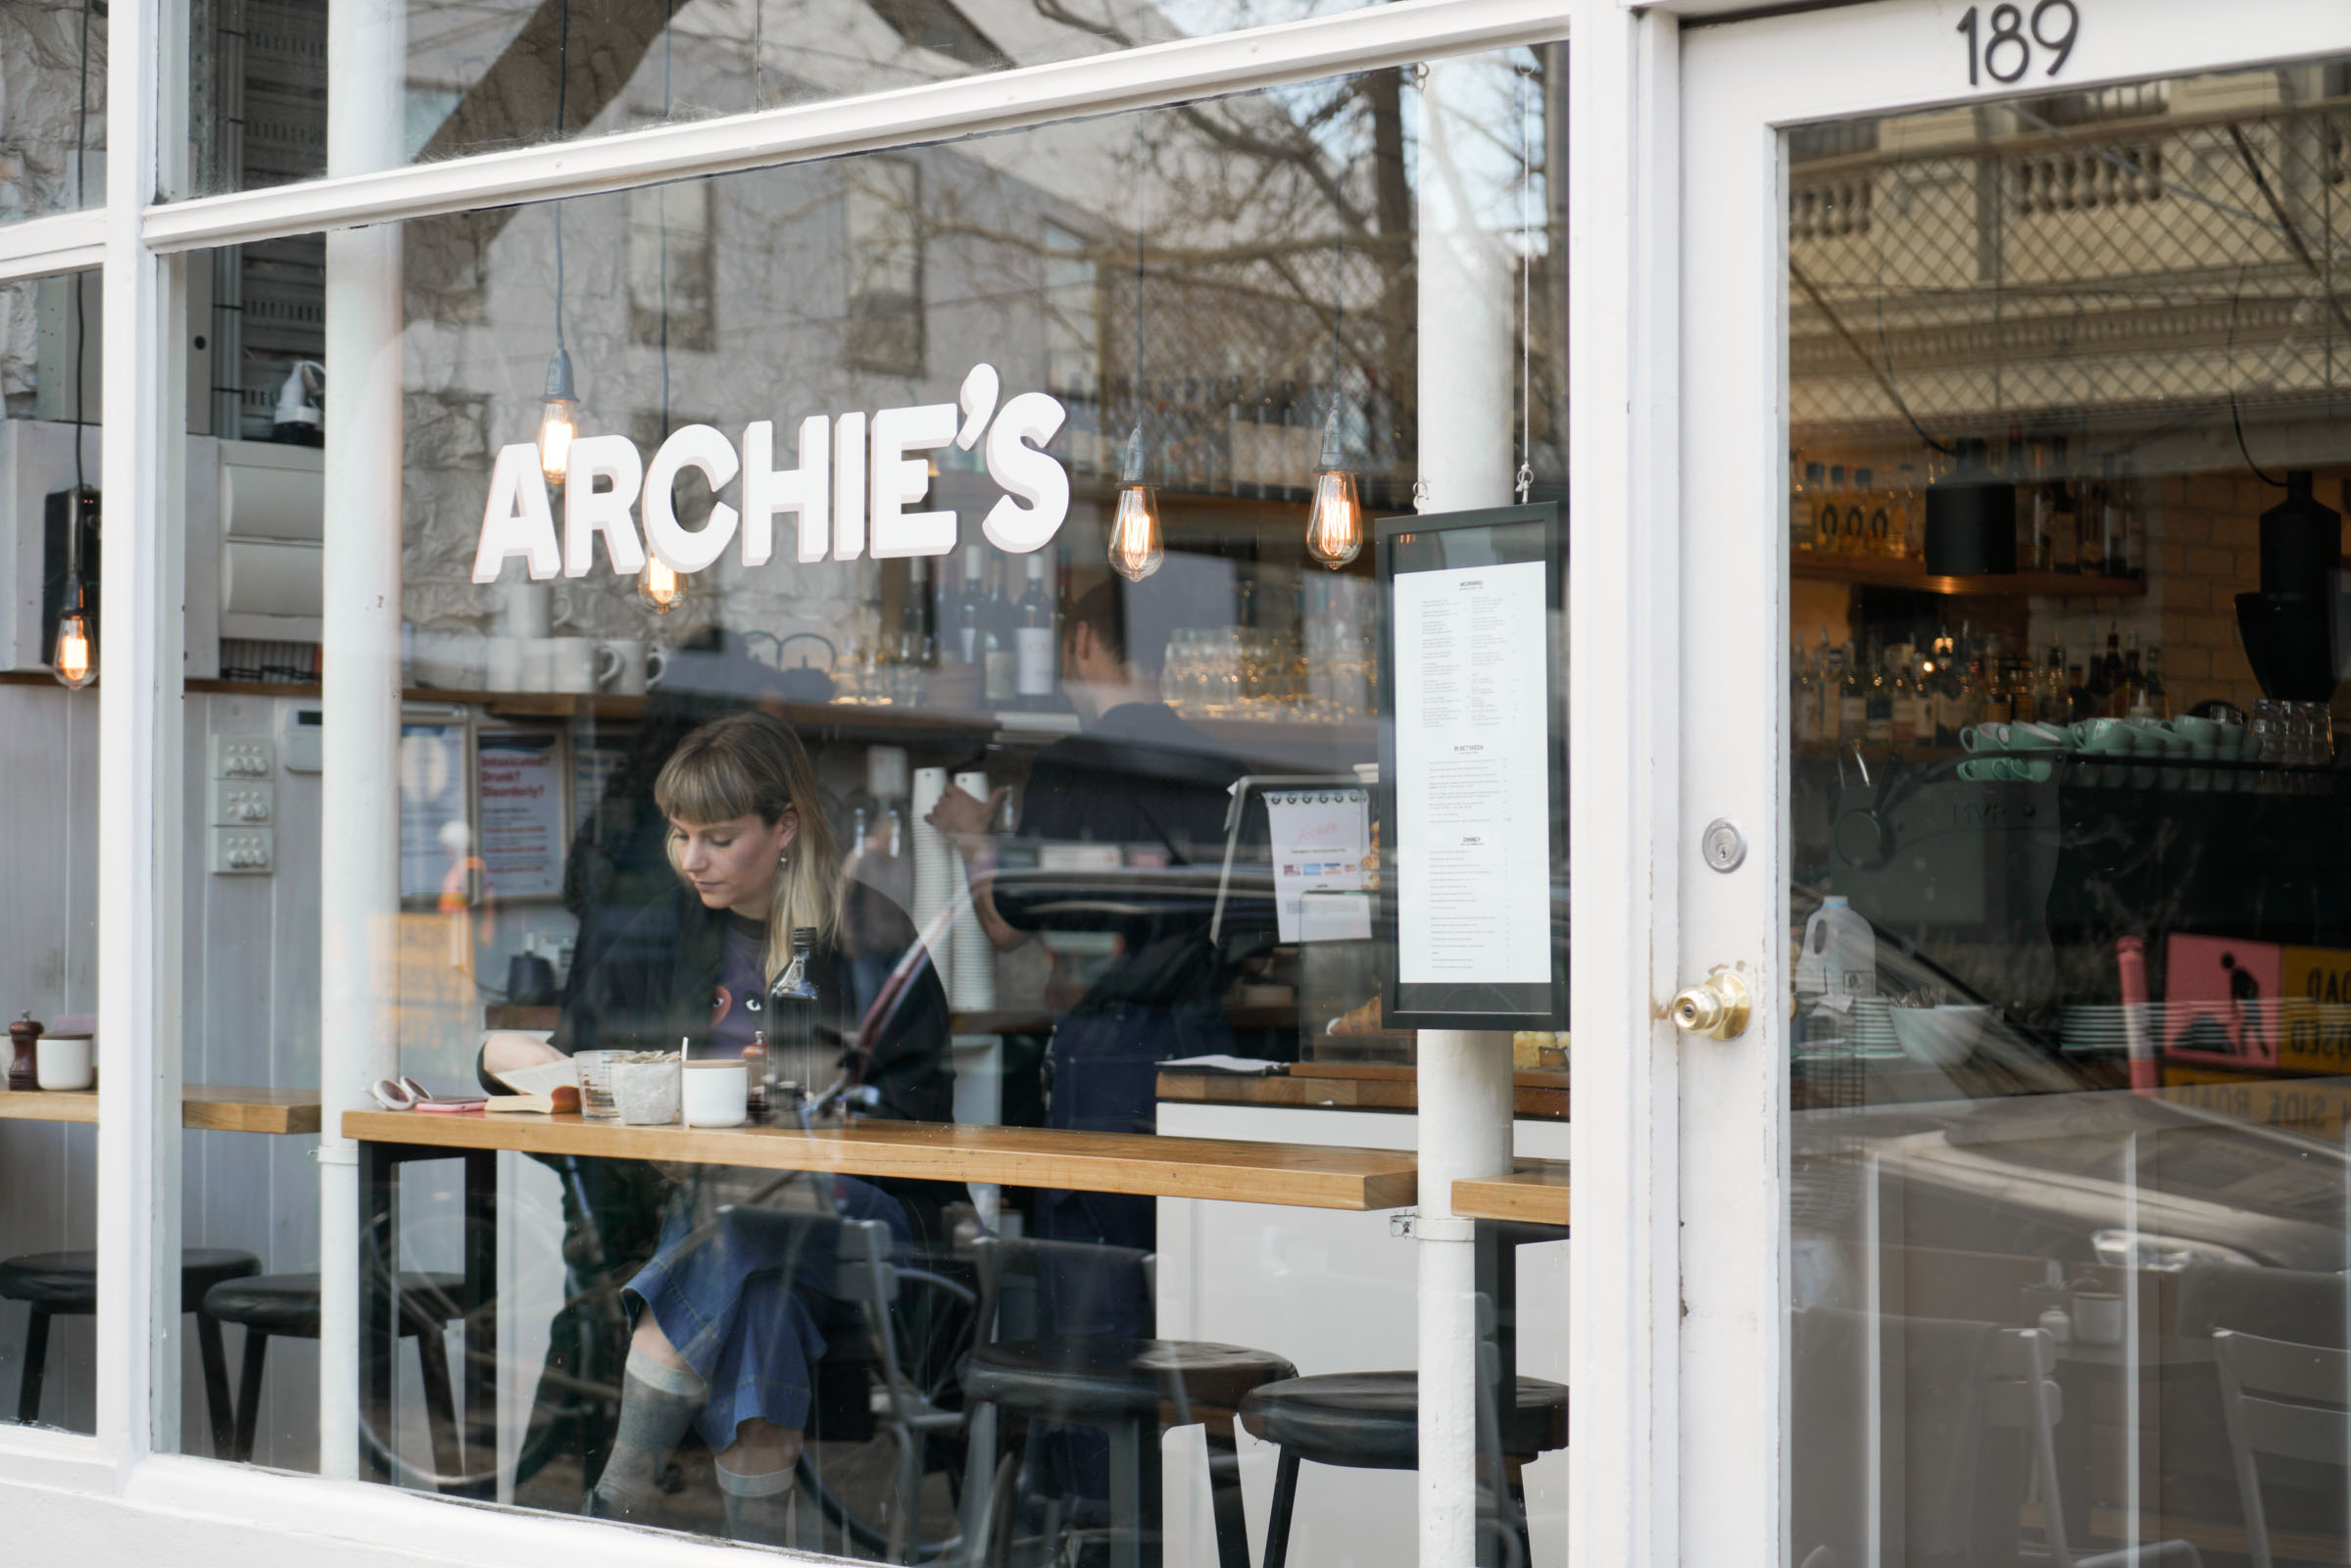 AMEX MOBILE PAYMENTS CAFE - ARCHIE'S ALL DAY